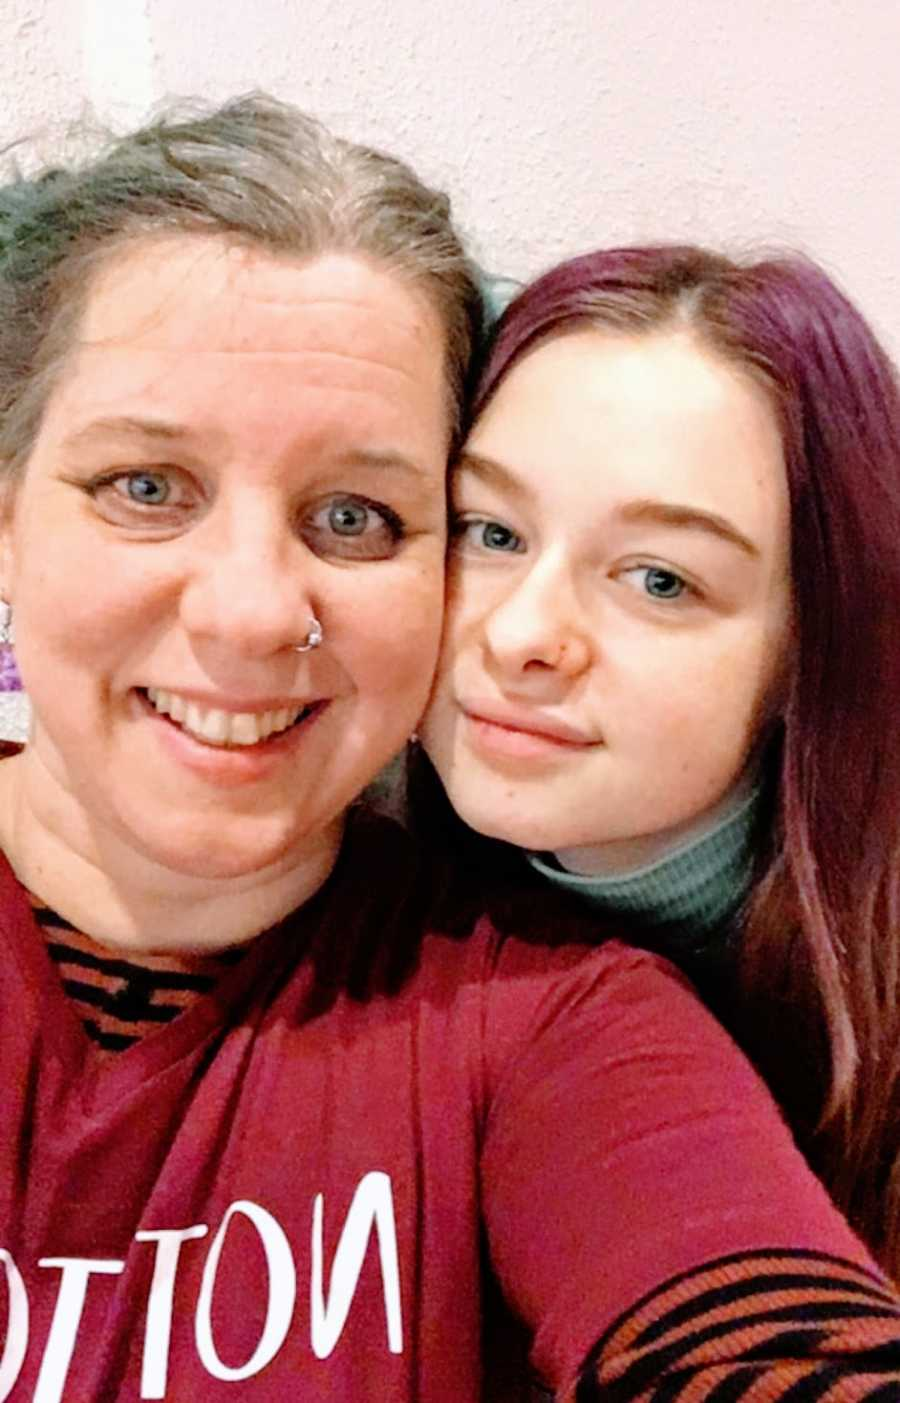 A nonbinary person and their daughter with faces pressed together for a photo